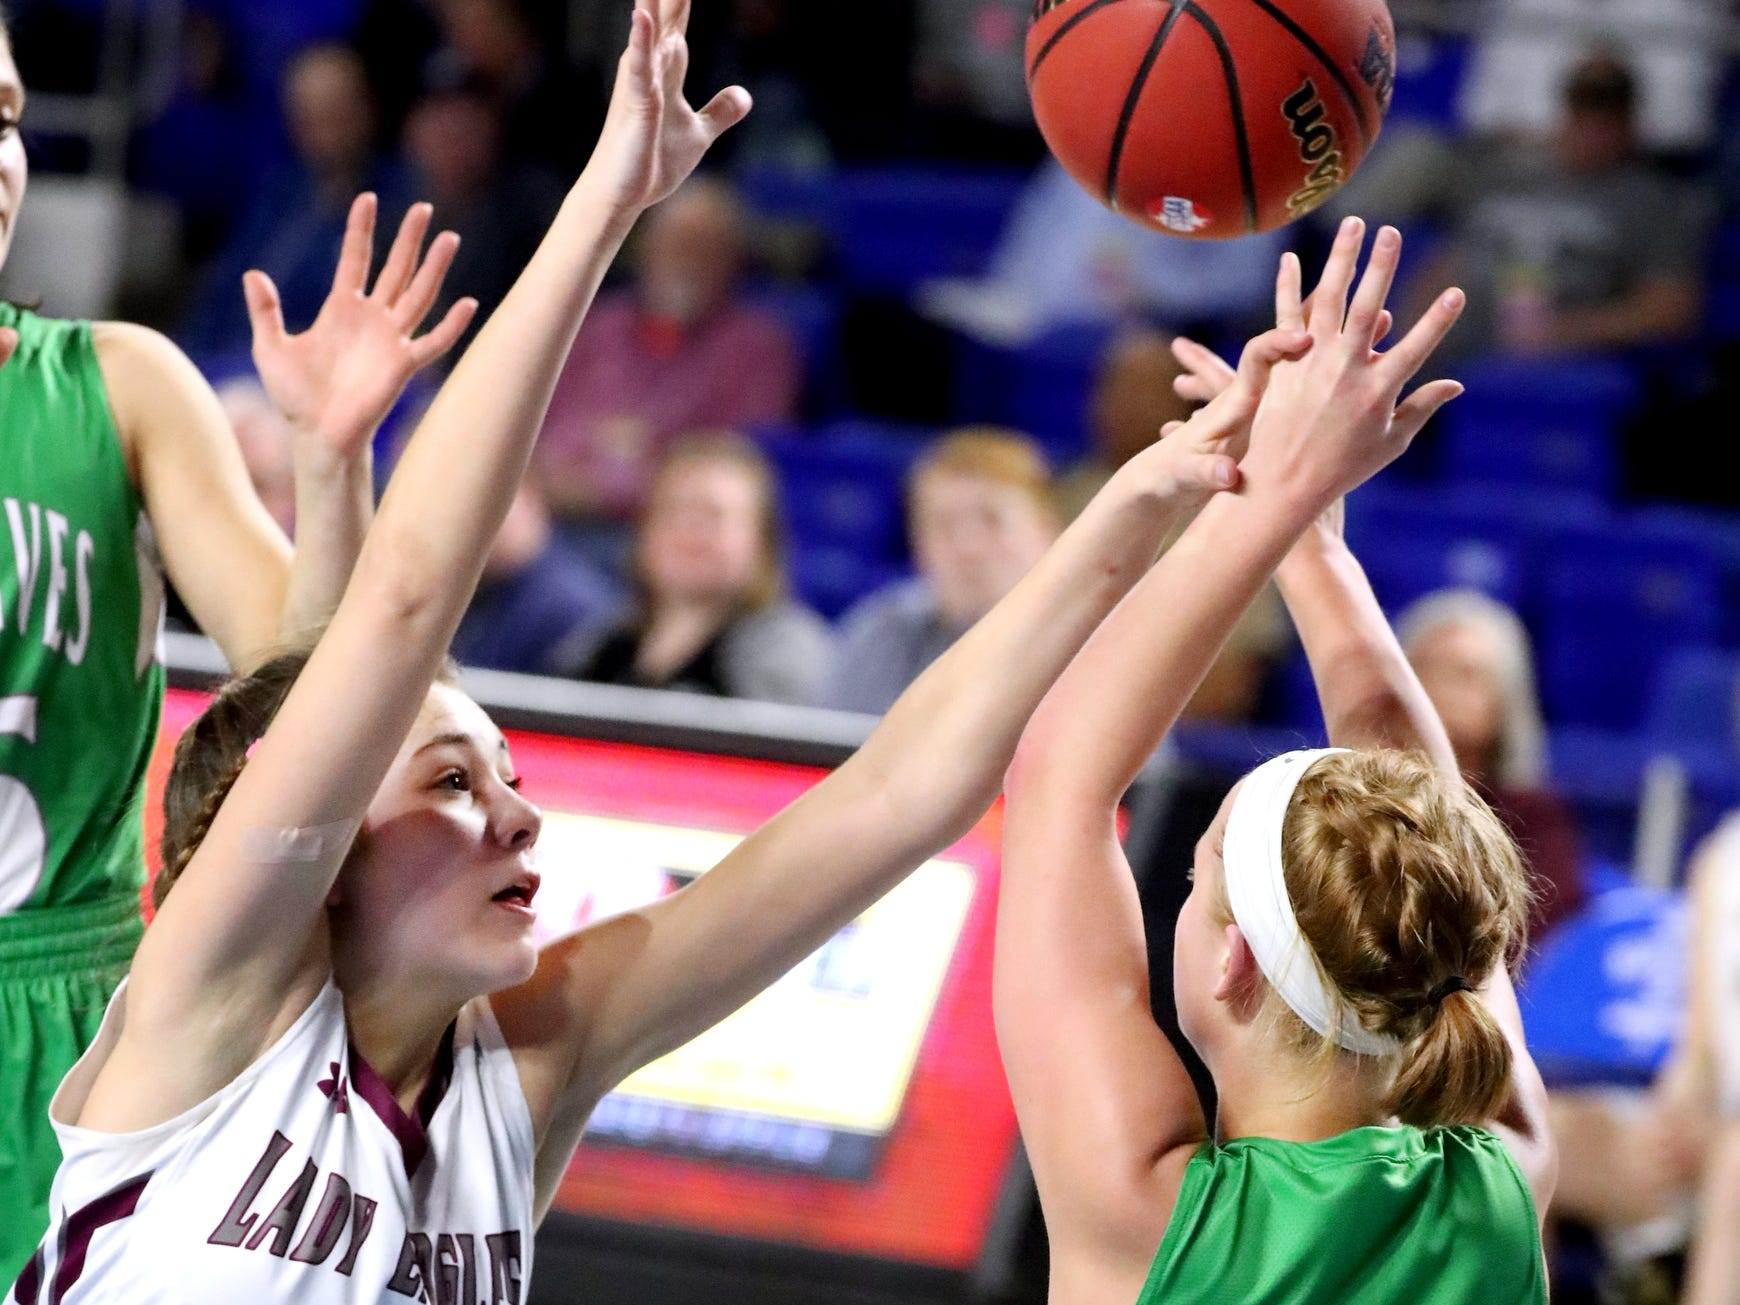 Eagleville's Elizabeth Thompson (5) tries to block a pass mode by Midway's Paige Bacon (5) after Bacon recovers a ball from the floor during the quarterfinal round of the TSSAA Div. 1 Class A Girls State Tournament, on Thursday, March 7, 2019, at Murphy Center in Murfreesboro, Tenn.